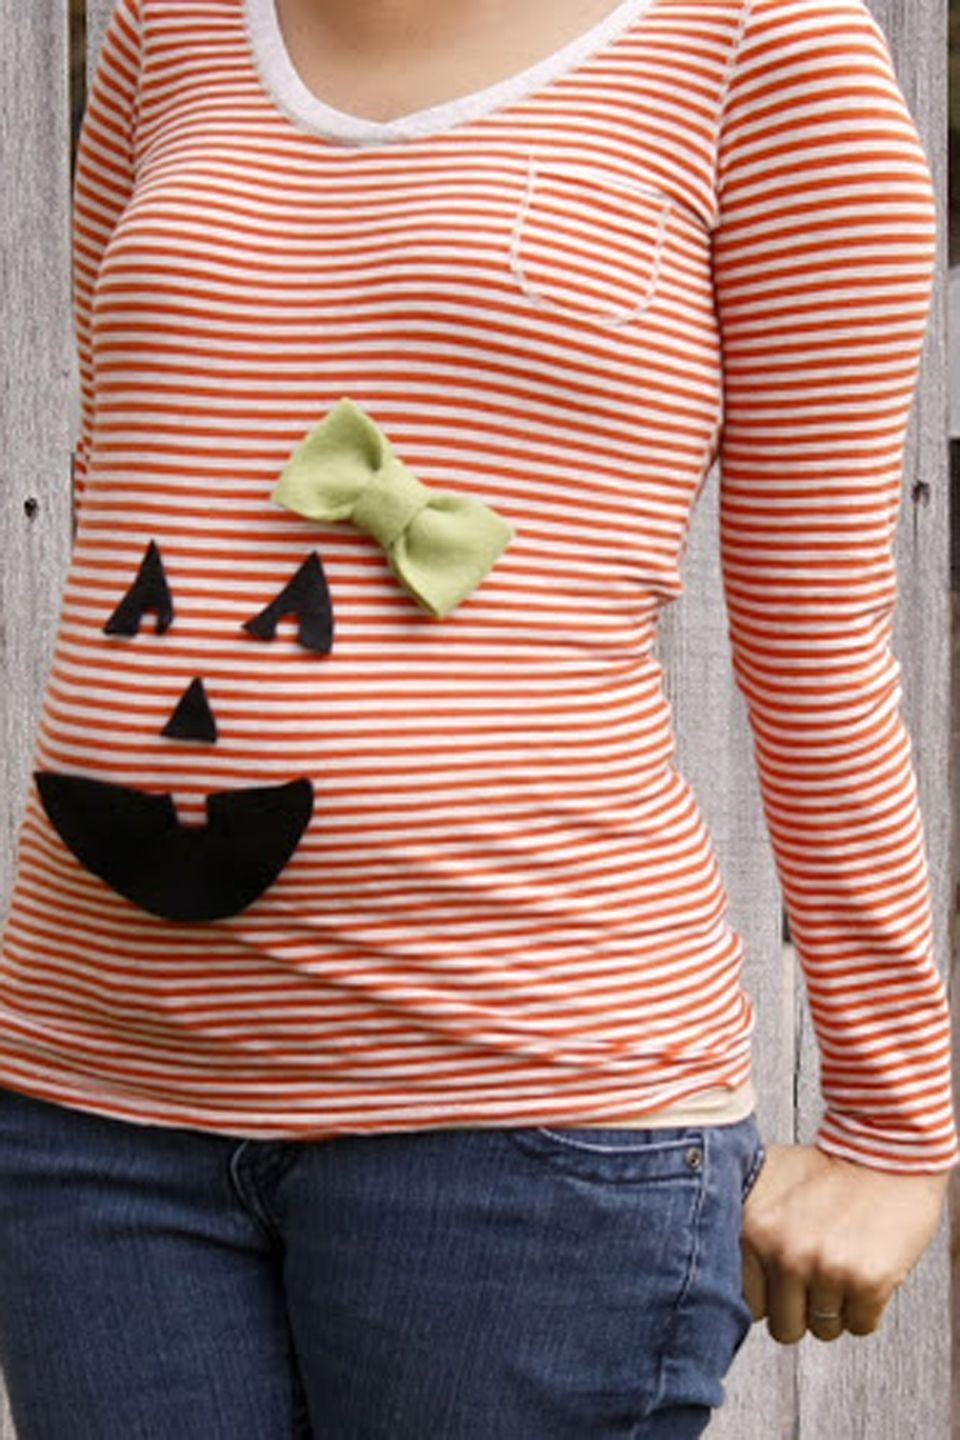 """<p>Skip the Halloween stress with this easy-to-make pumpkin costume.</p><p><strong>Get the tutorial at <a href=""""http://www.deliacreates.com/this-looked-much-better-in-my-head/"""" rel=""""nofollow noopener"""" target=""""_blank"""" data-ylk=""""slk:Delia Creates"""" class=""""link rapid-noclick-resp"""">Delia Creates</a>.</strong> </p><p><a class=""""link rapid-noclick-resp"""" href=""""https://www.amazon.com/Darice-FLT-0232-Adhesive-Felties-Sheet/dp/B0054G5XA2/?tag=syn-yahoo-20&ascsubtag=%5Bartid%7C10050.g.4972%5Bsrc%7Cyahoo-us"""" rel=""""nofollow noopener"""" target=""""_blank"""" data-ylk=""""slk:SHOP BLACK ADHESIVE FELT"""">SHOP BLACK ADHESIVE FELT</a></p>"""